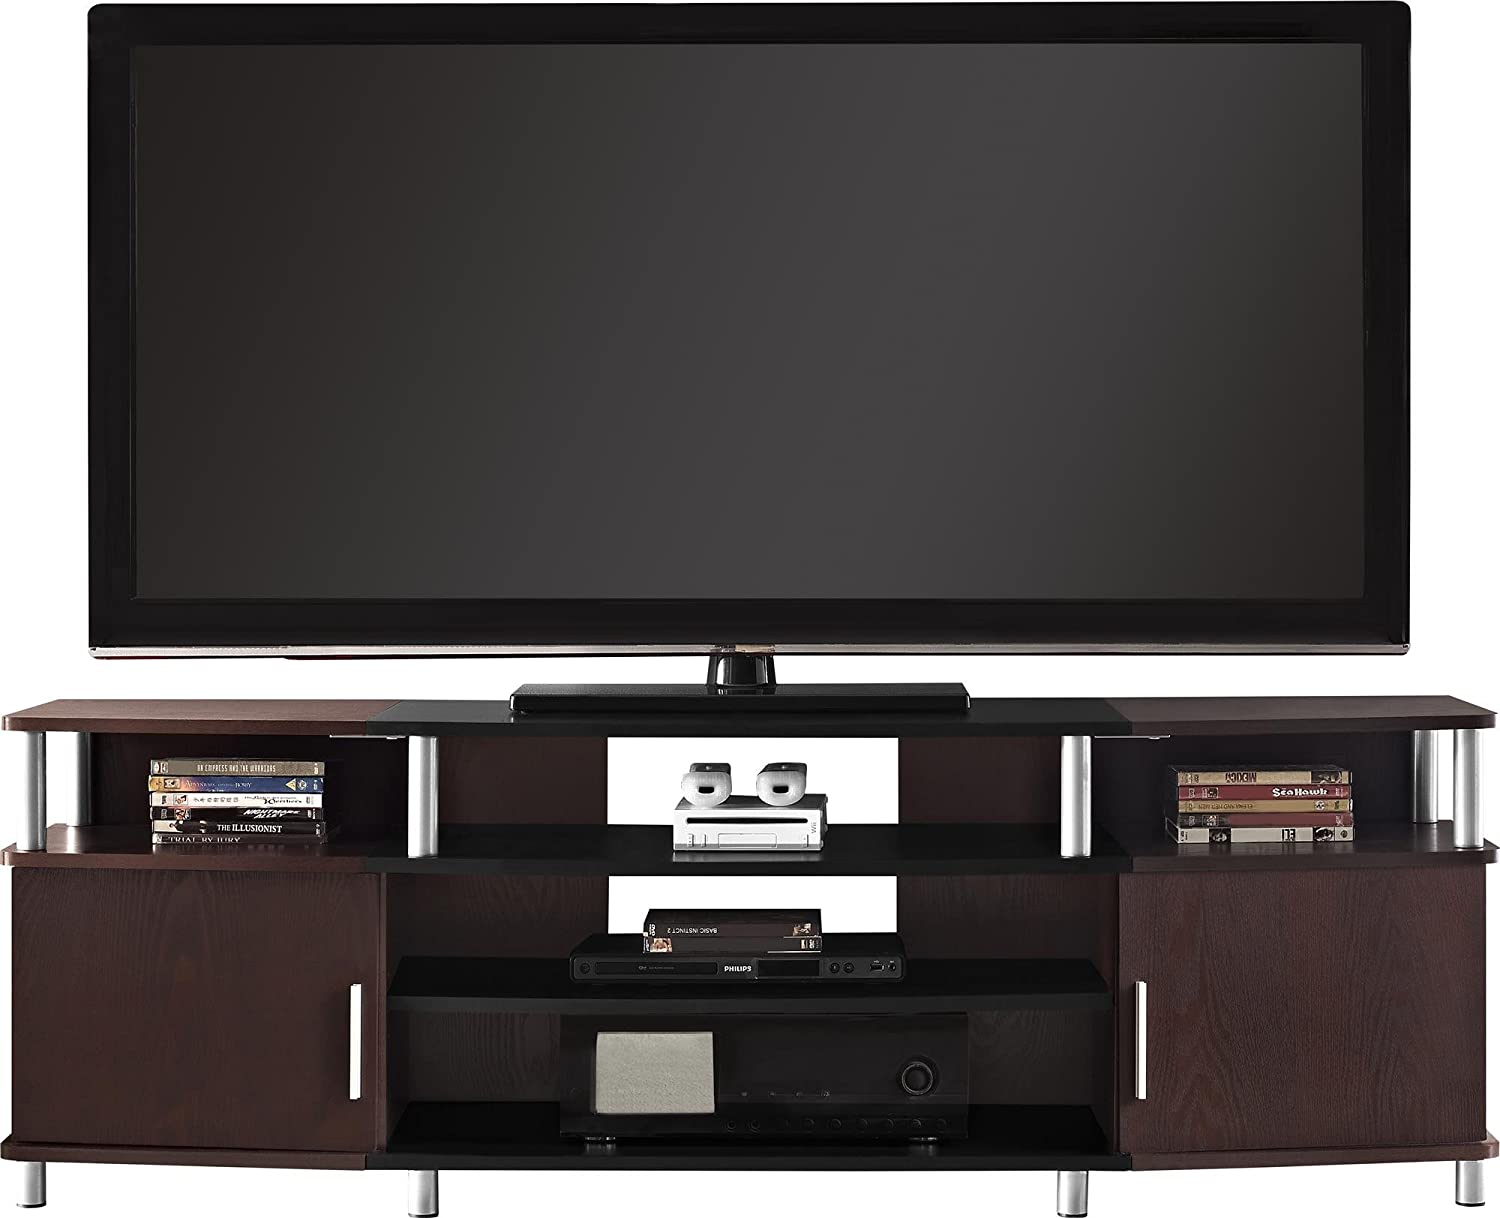 Amazoncom Ameriwood Home Carson TV Stand for TVs up to 70 Wide